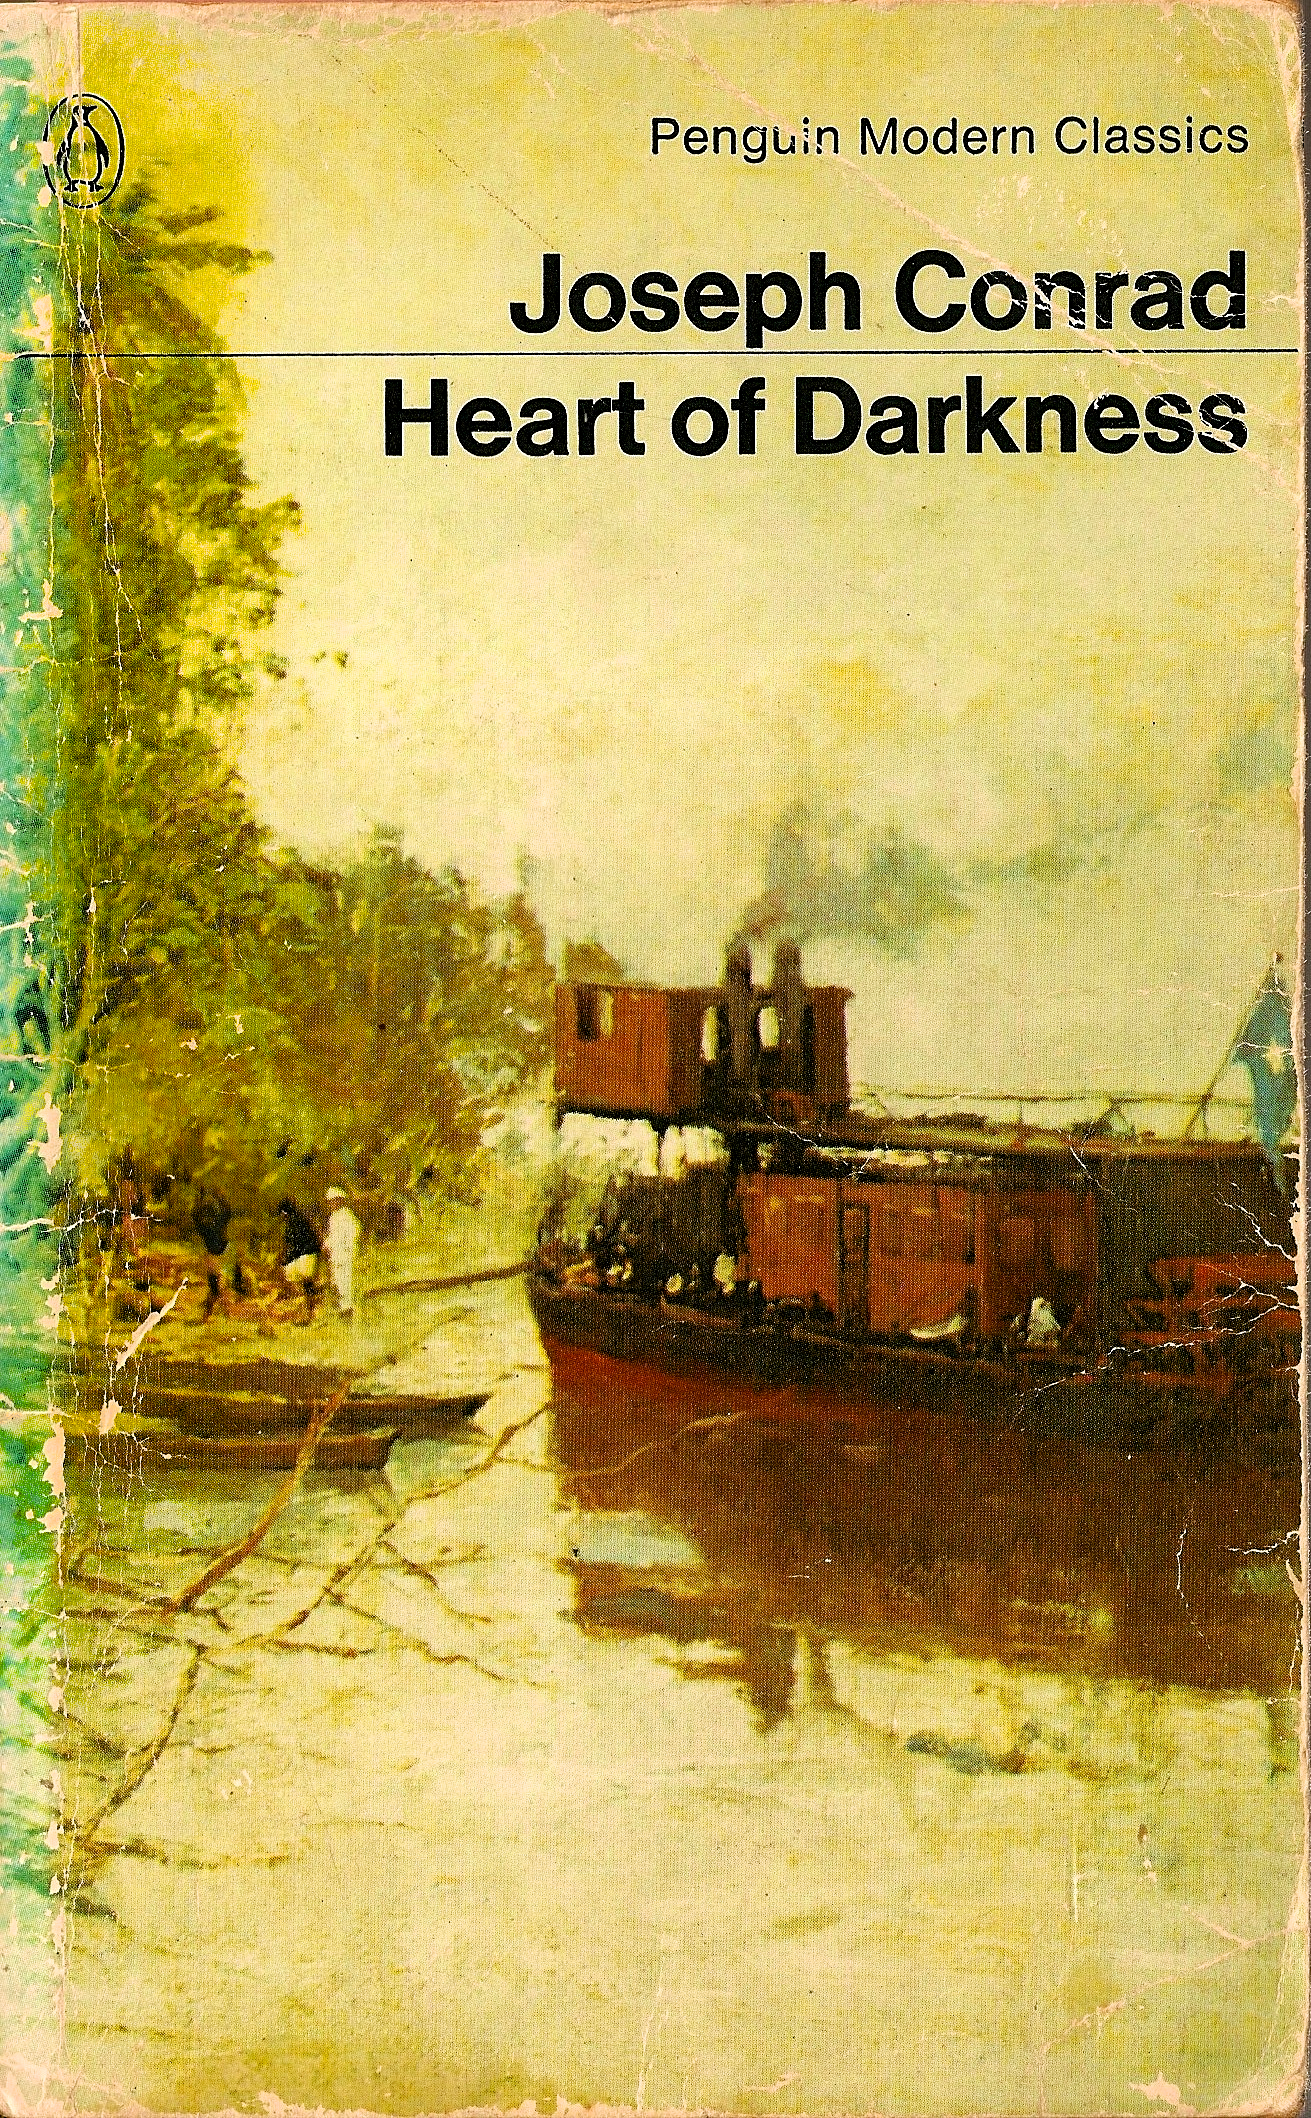 the demonstration of the european expansion in joseph conrads heart of darkness Brown, tony c cultural psychosis on the frontier: the work of the darkness in joseph conrad's heart of darkness studies in the novel 321 (spring 2000): 14-28 rpt in short story criticism ed joseph palmisano vol 69 detroit: gale, 2004 literature resource center web 15 jan 2014 bloom, harold joseph conrad's heart of darkness.